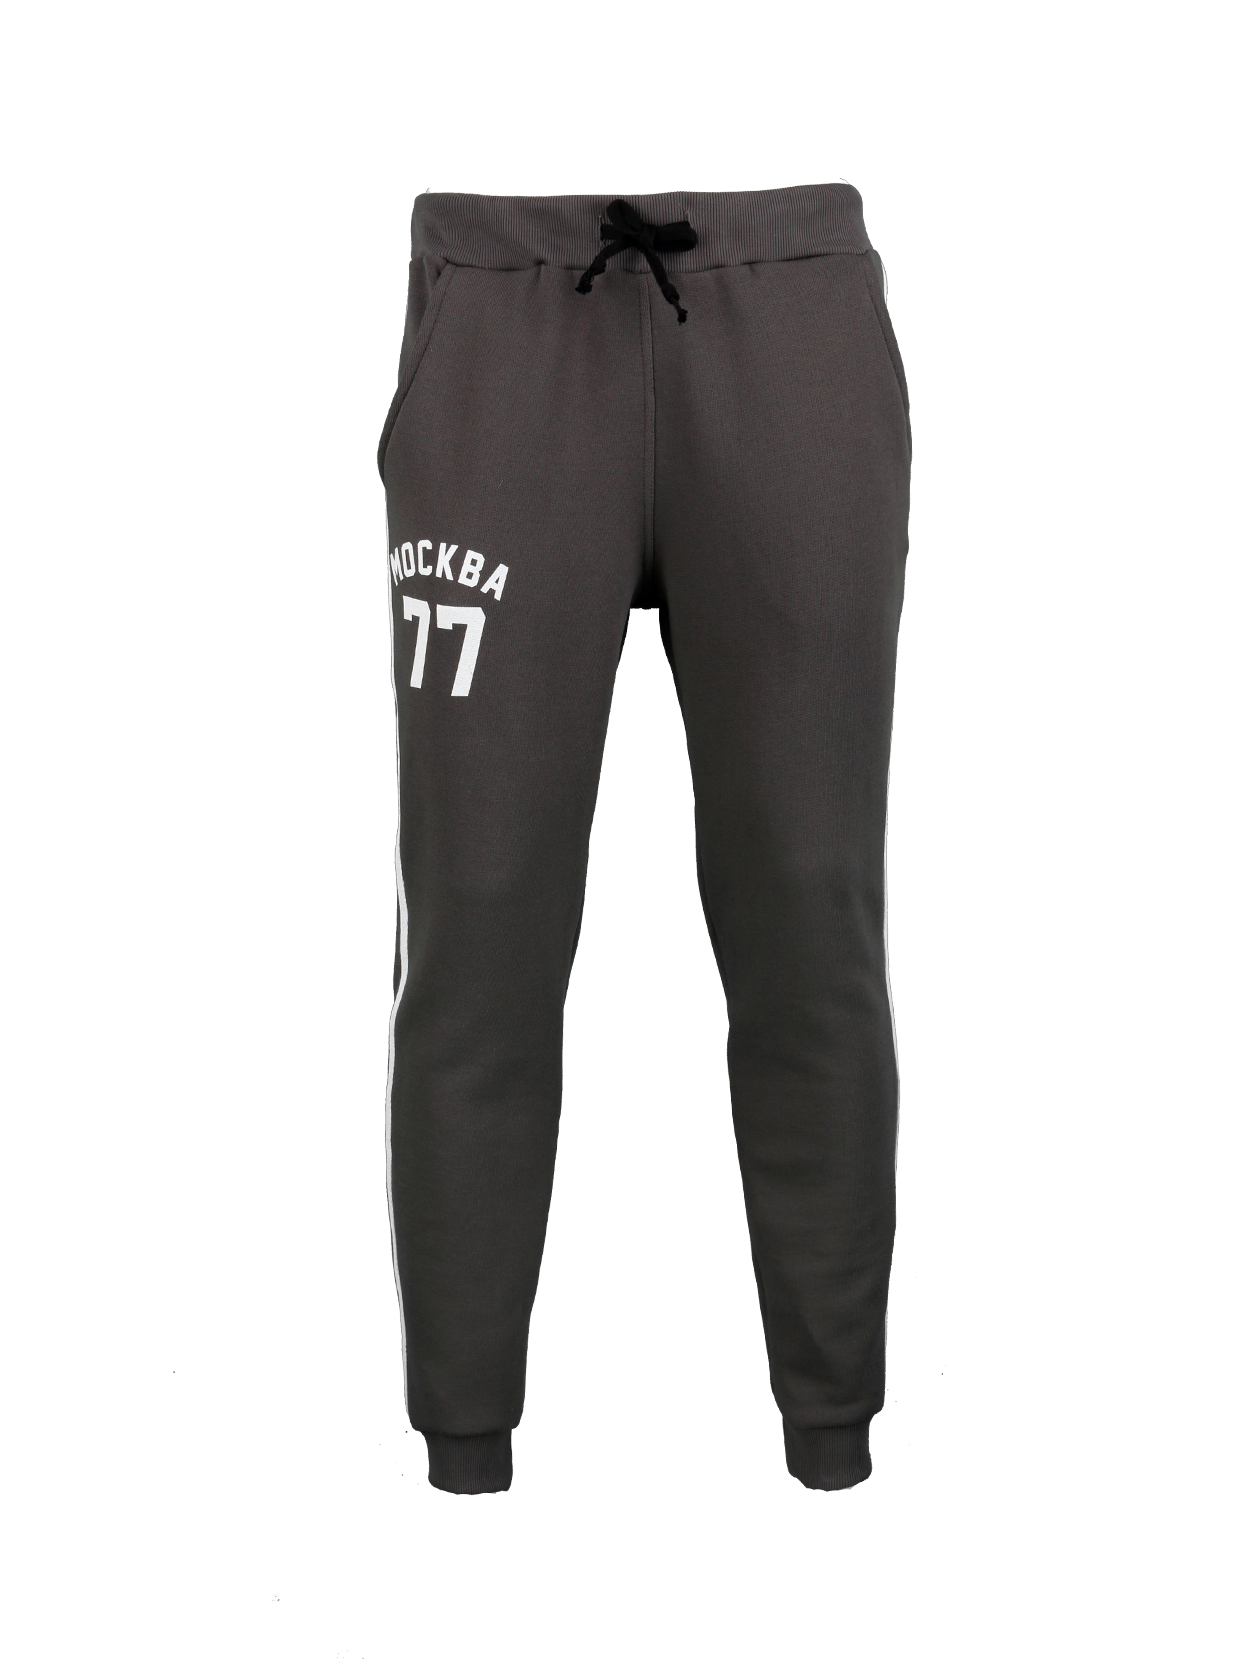 Mens Trousers Moscow 77